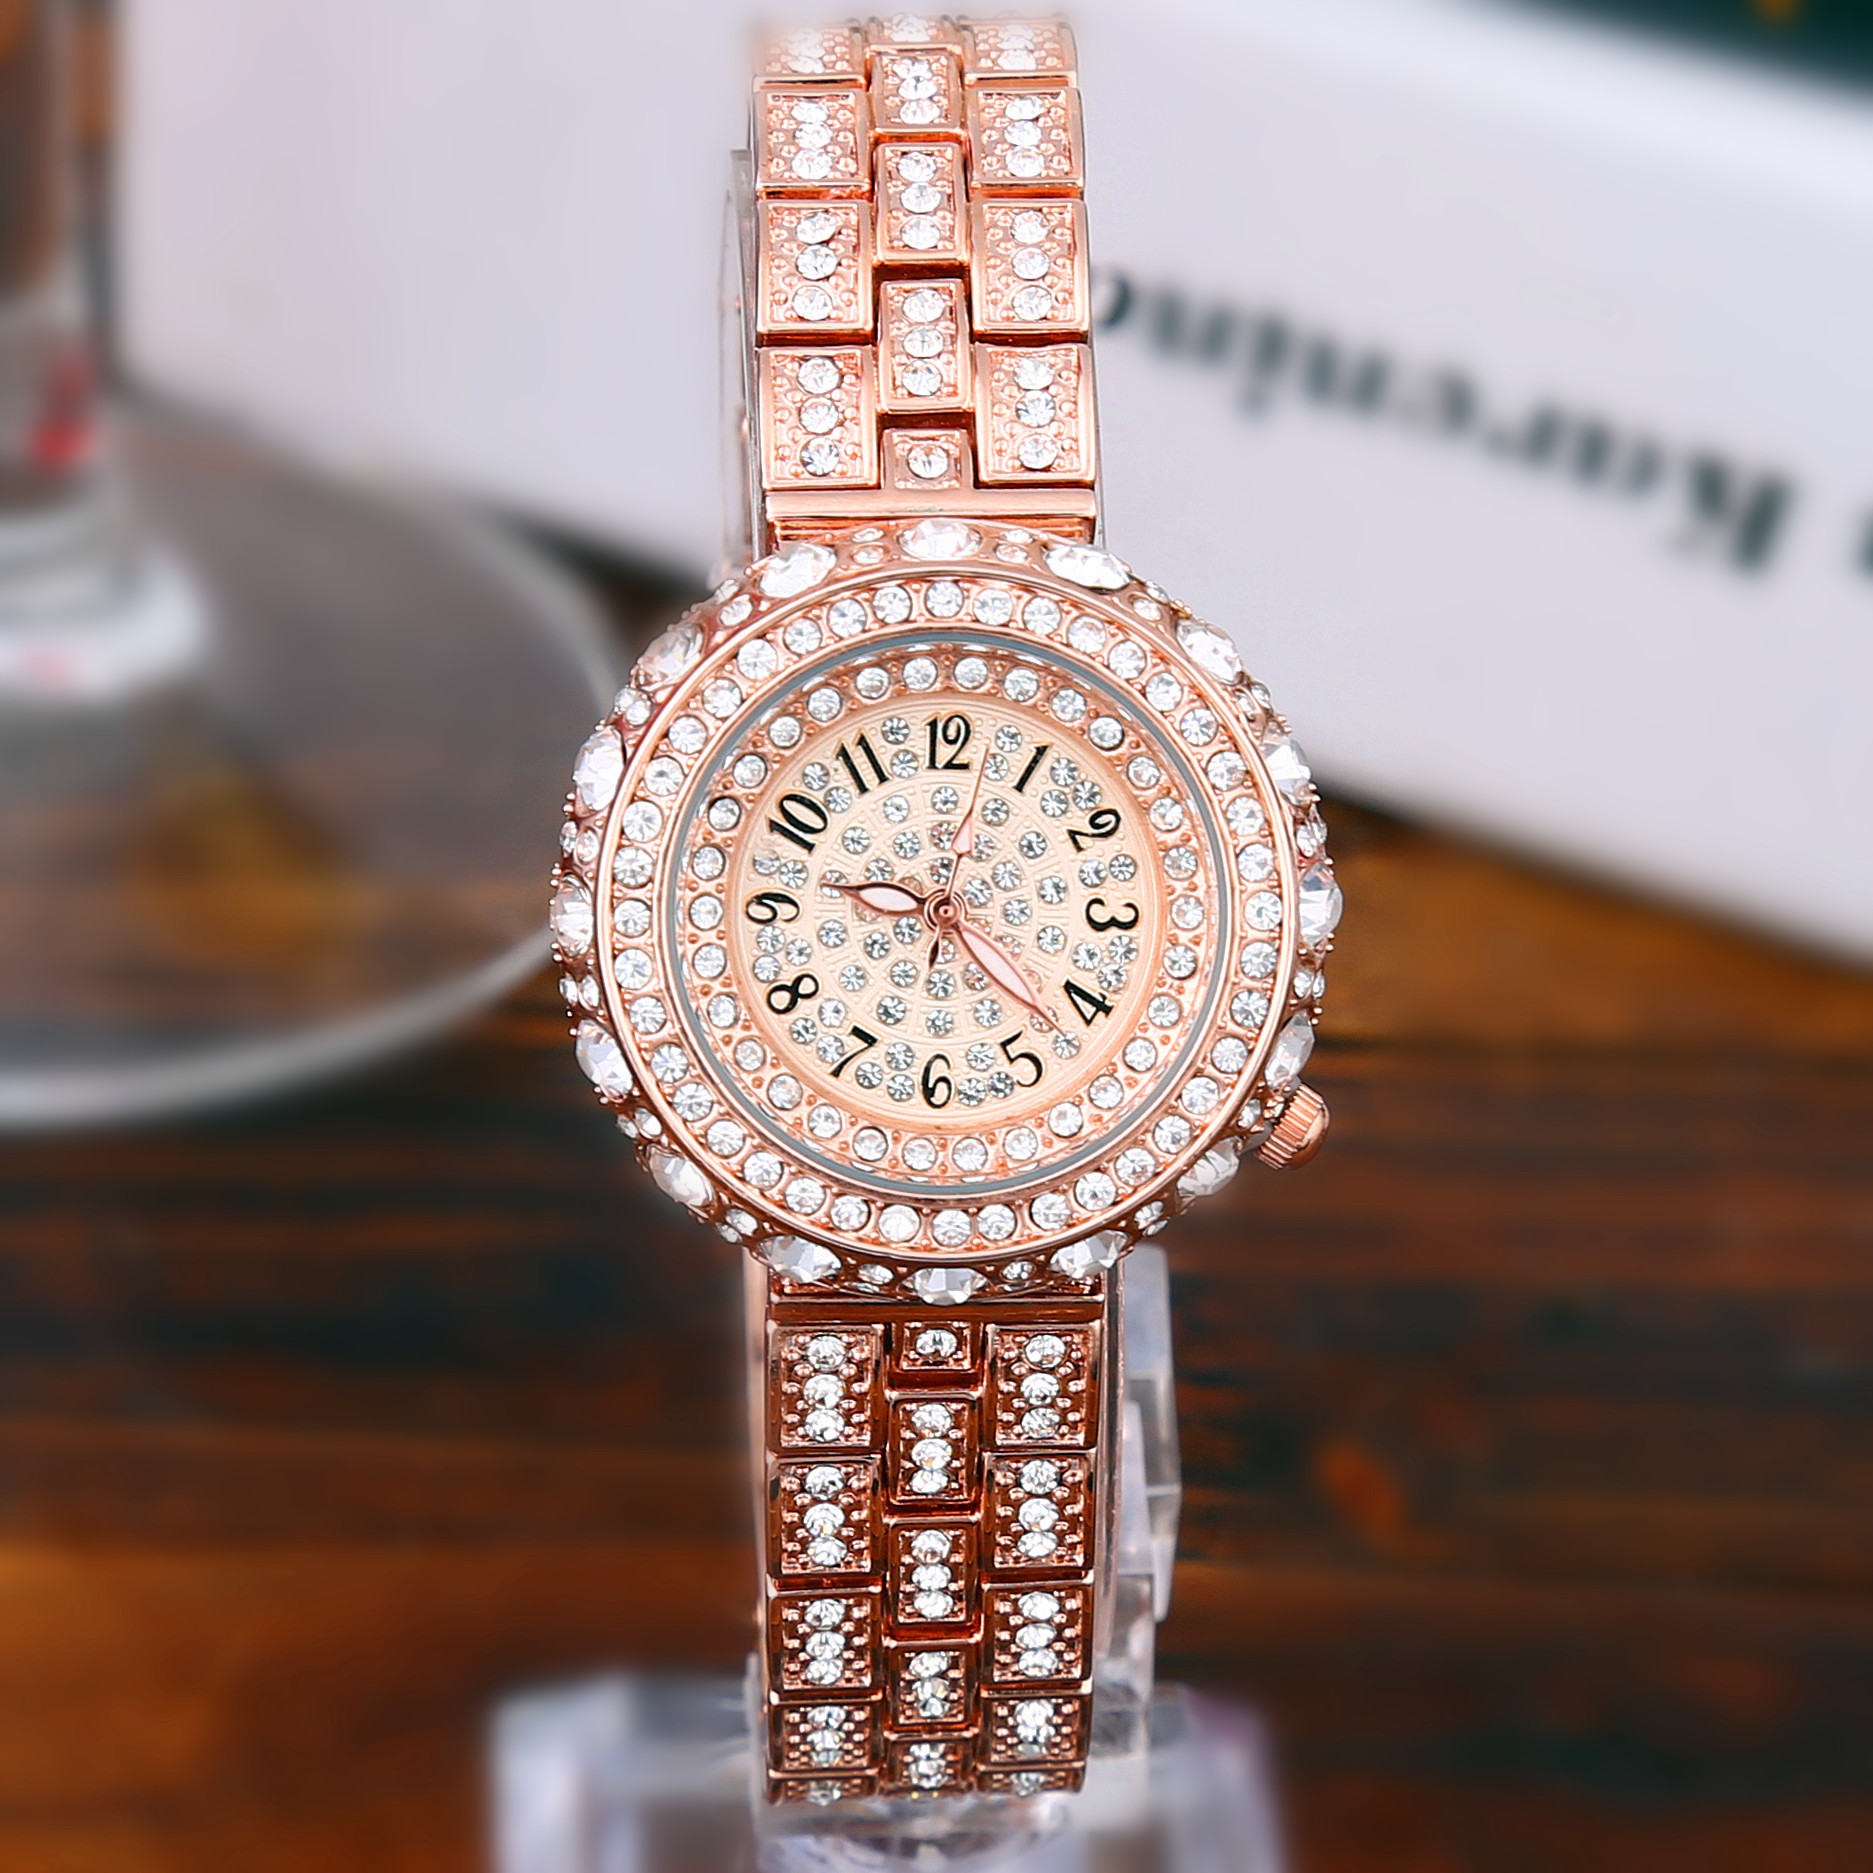 Luxury Full Diamond Dress Watch Women Rhinestone Bangle Watch Lady Rose Gold Silver Wristwatch Ladies Female Hours Reloj spring big sale brand bs luxury 14k gold diamond women watch lady gold siliver dress watch rhinestone bangle bracelet